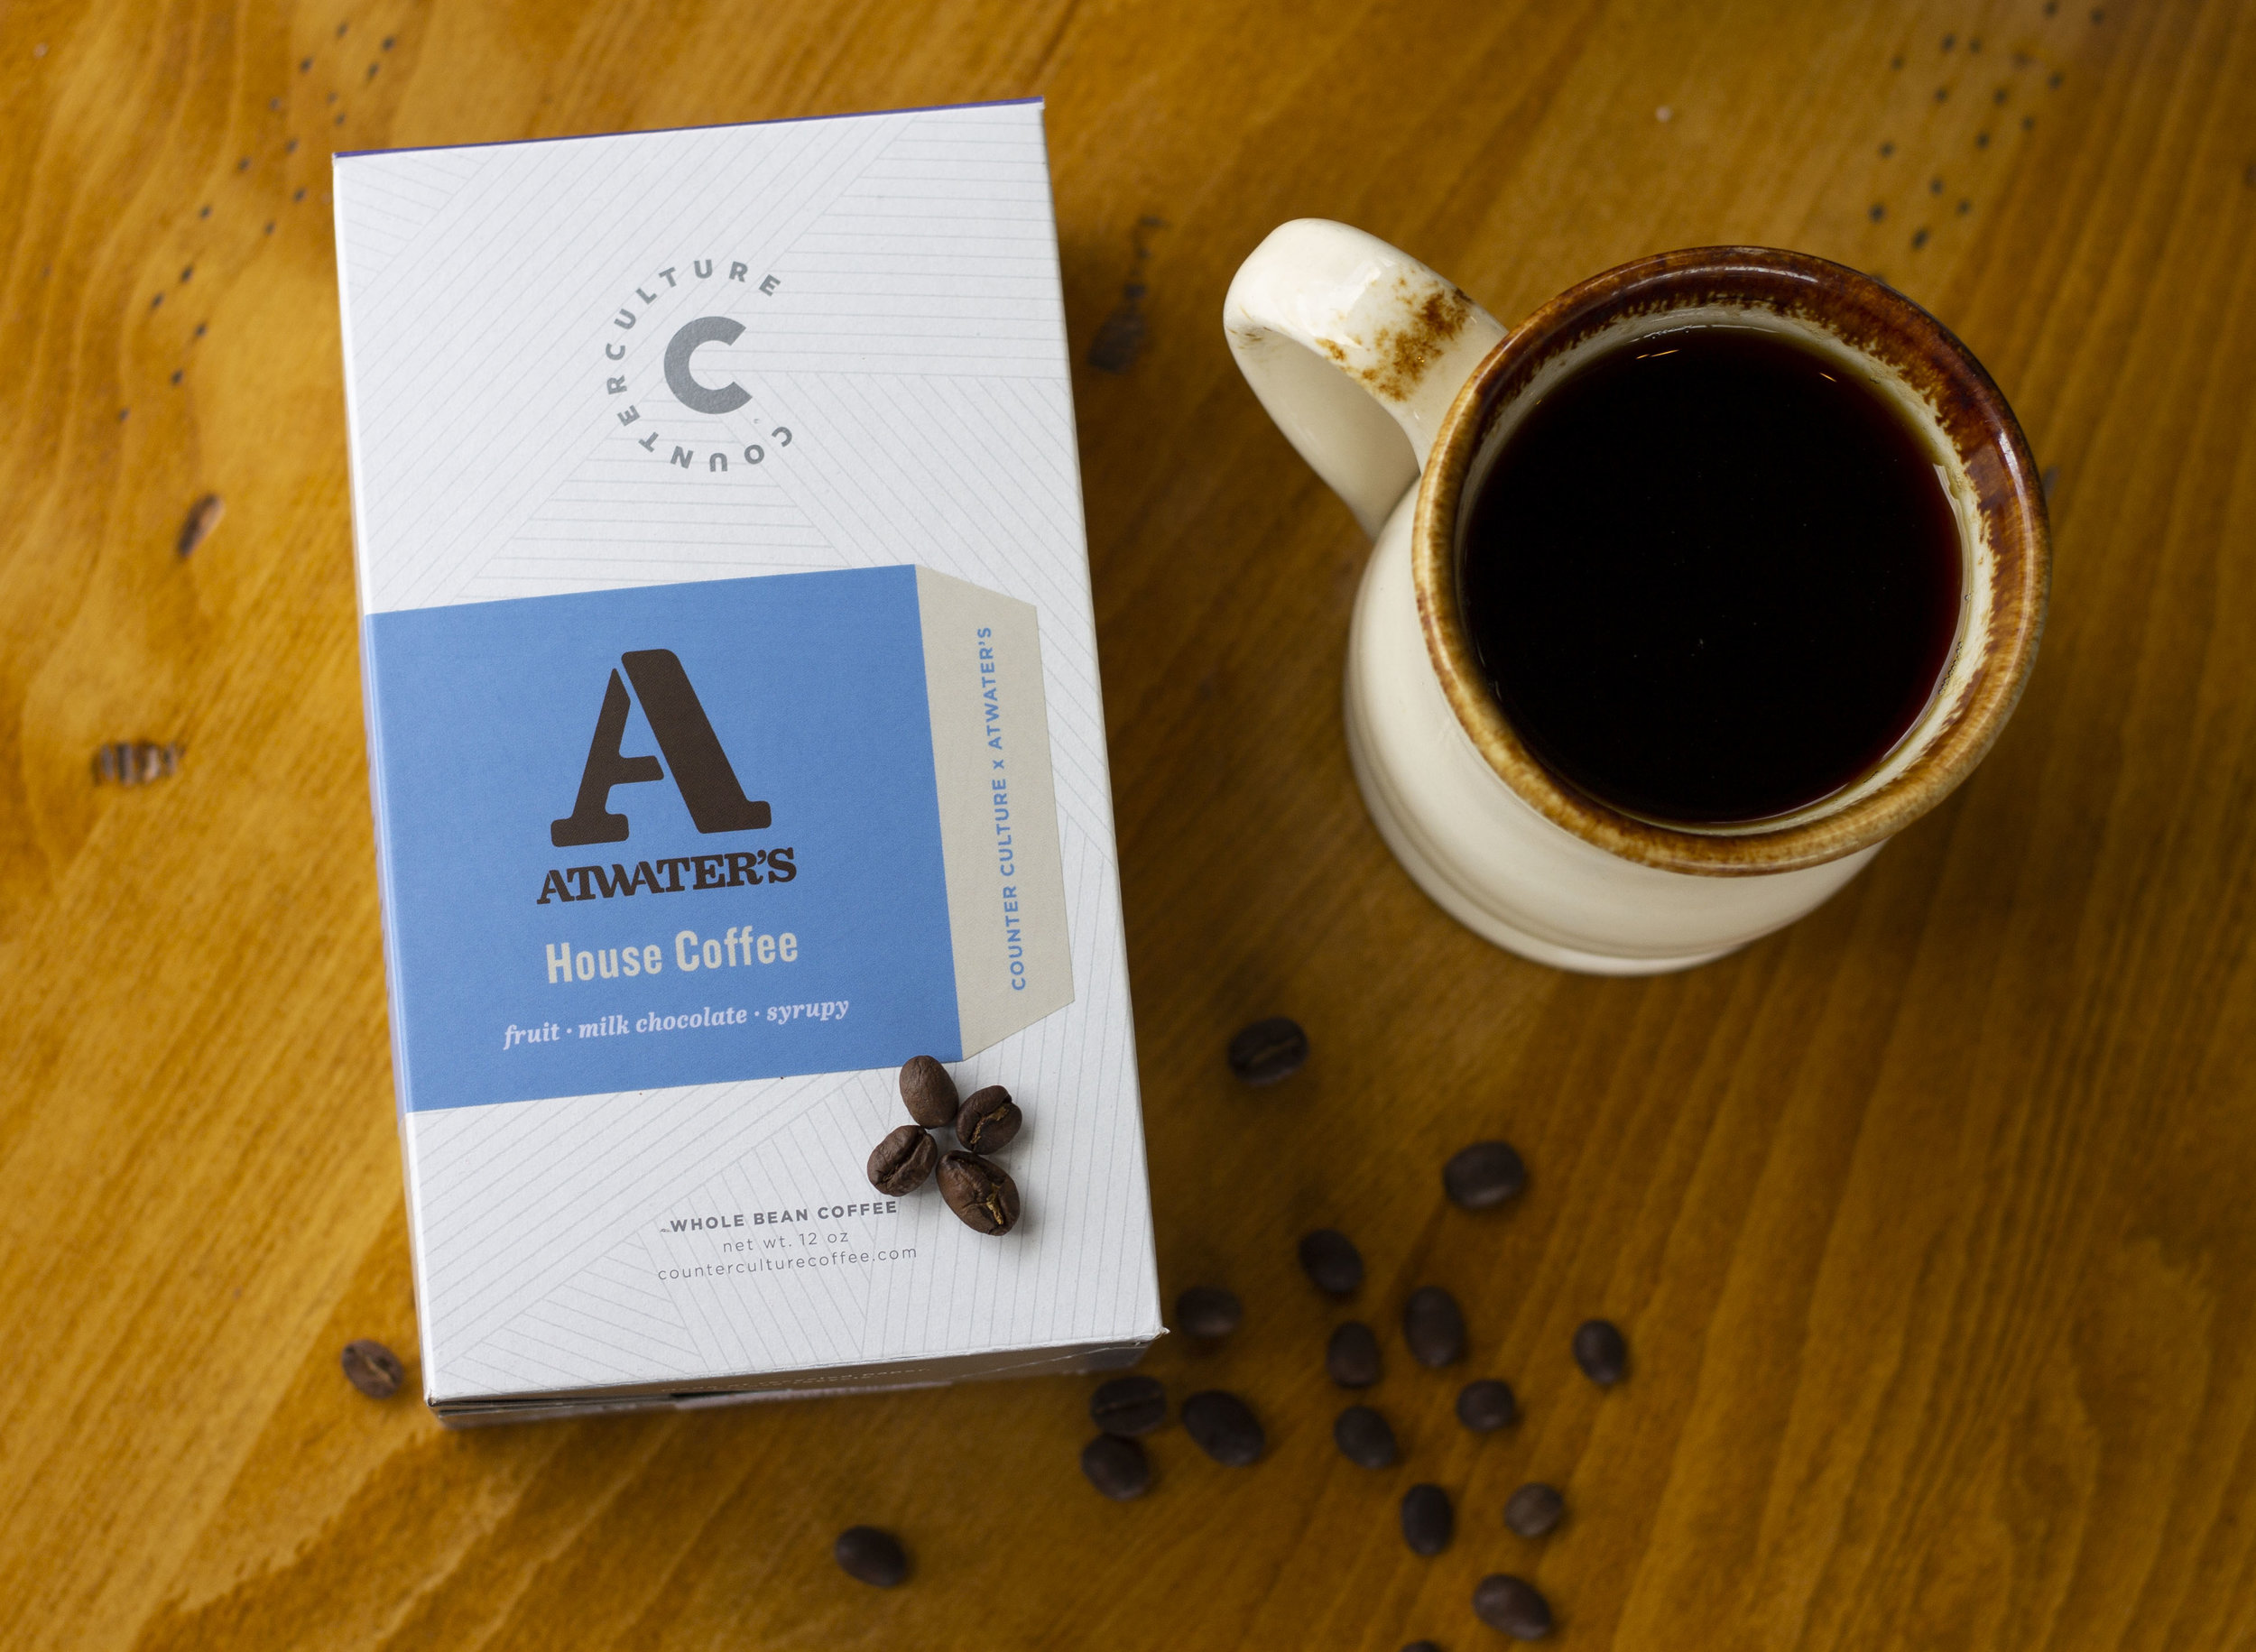 Atwater's House Coffee is the Counter Culture Hologram blend.